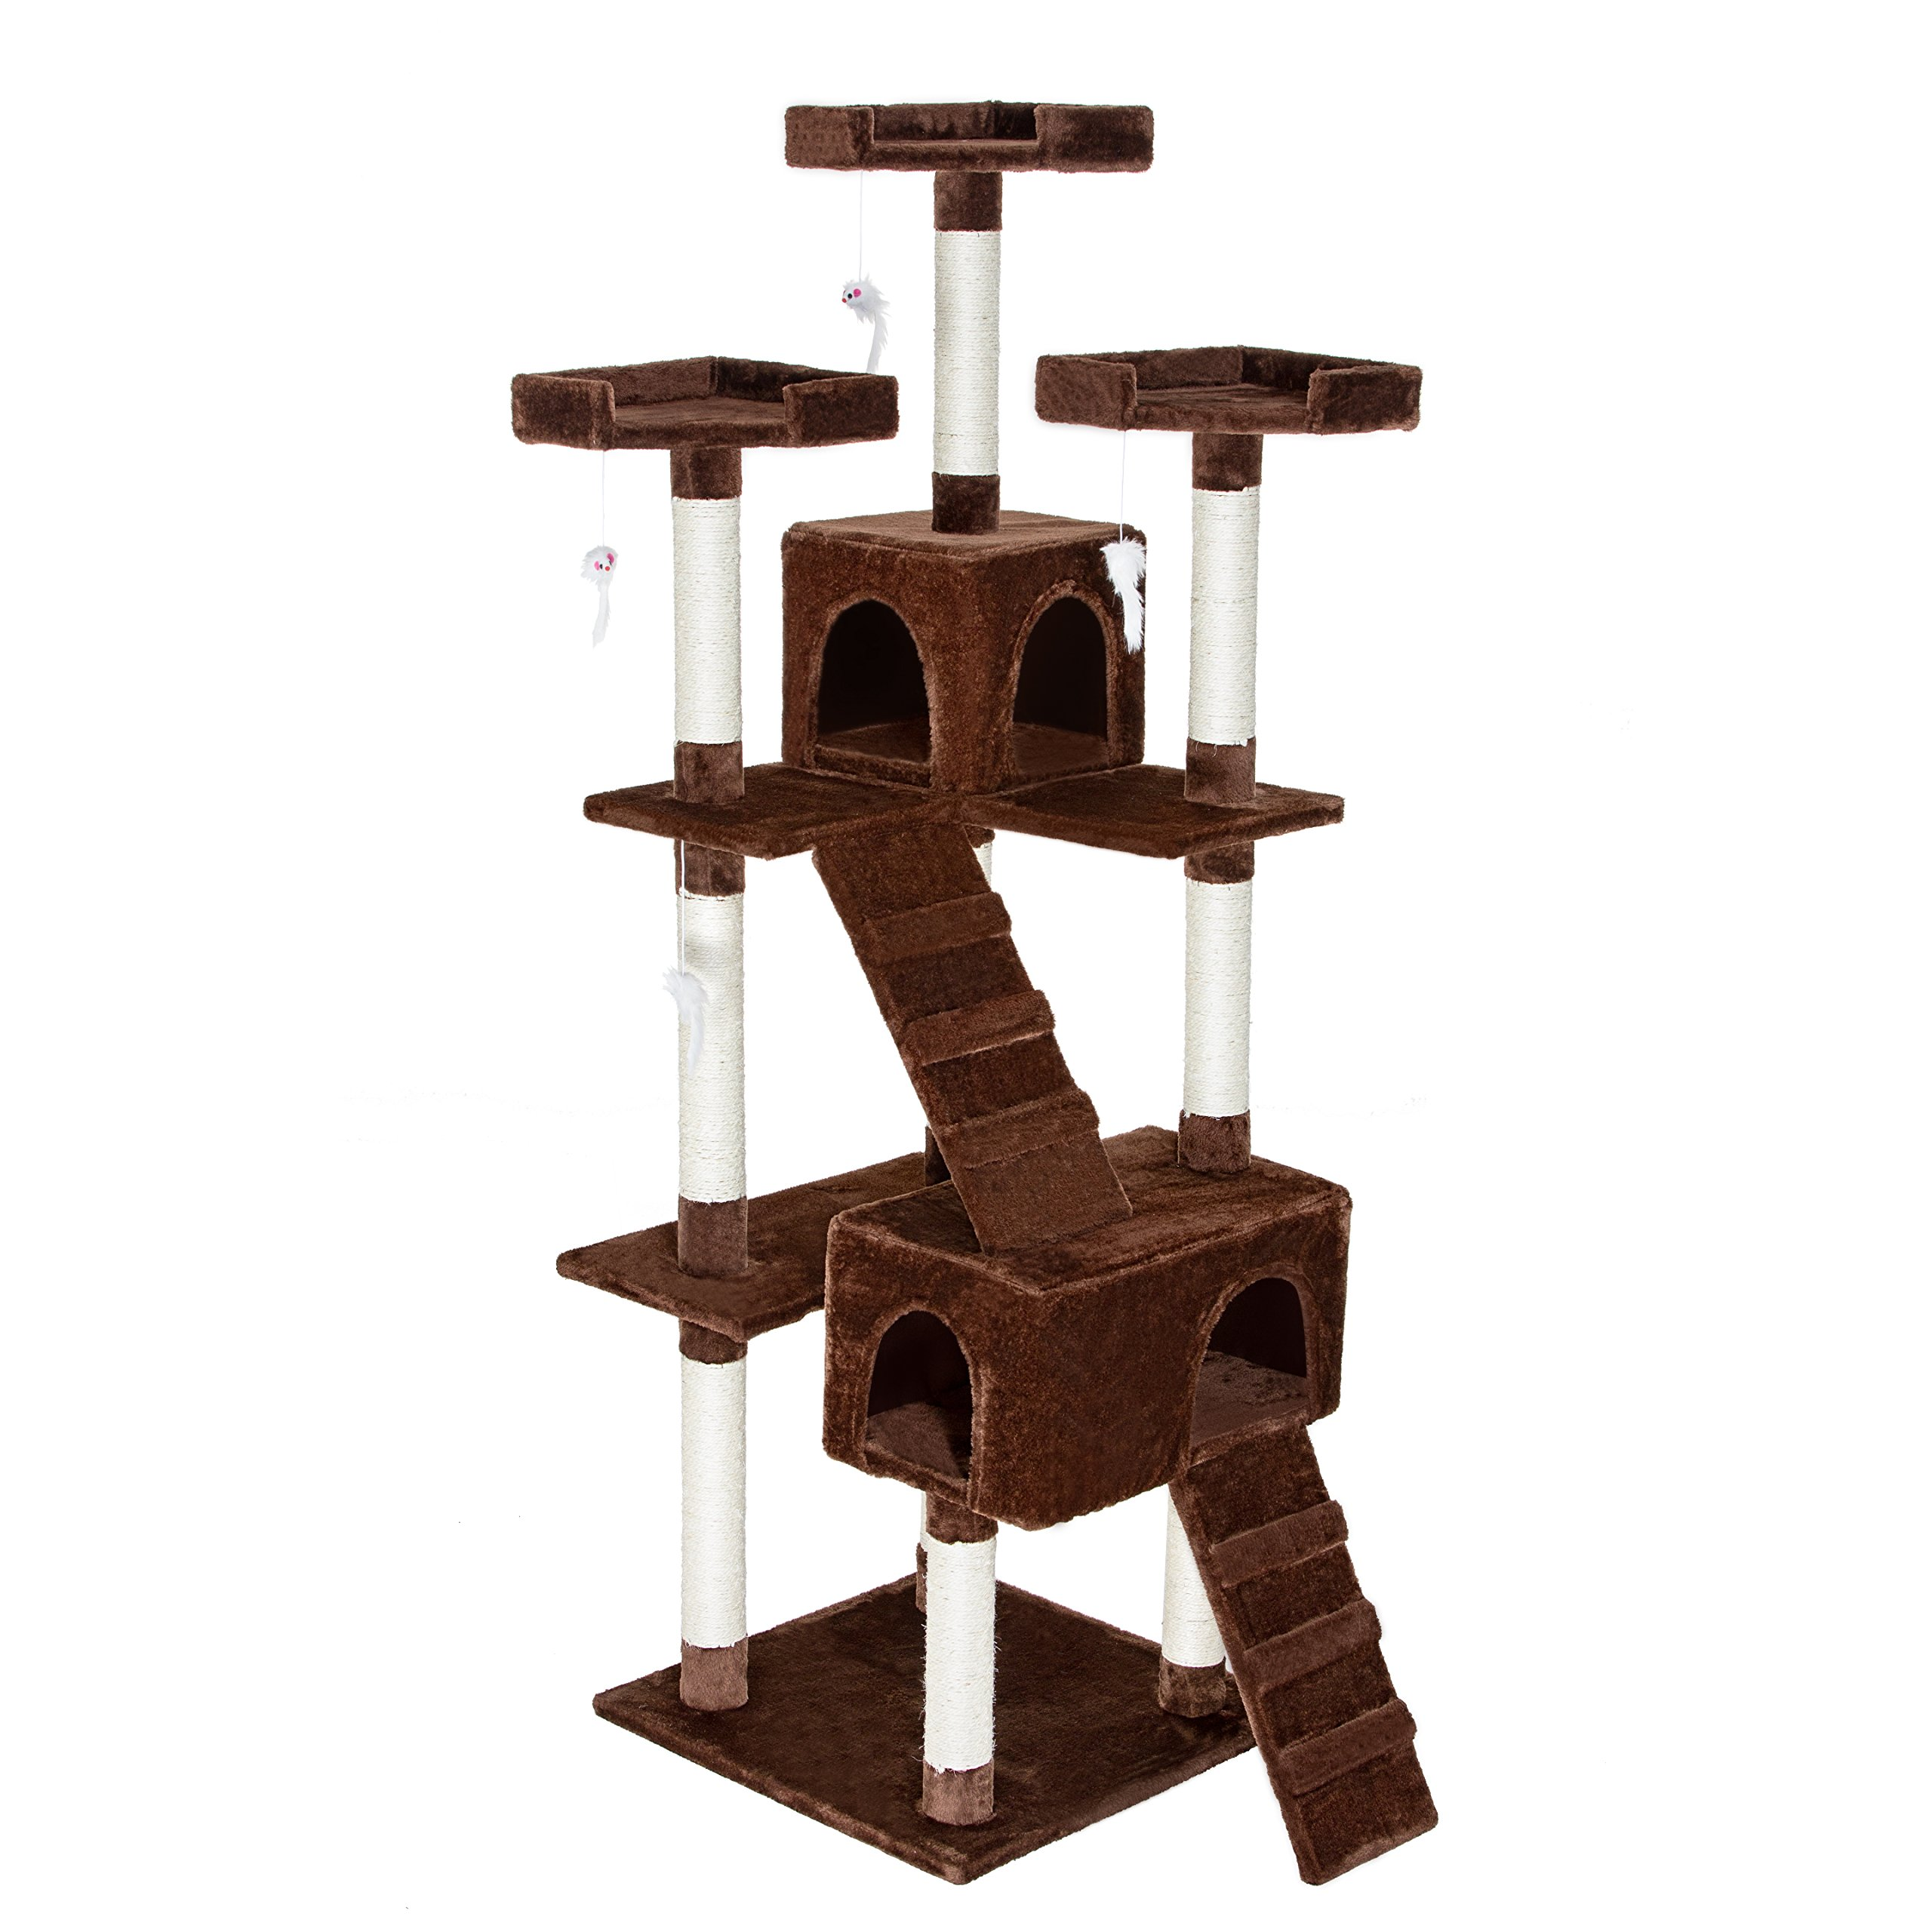 Mr Cute Cat Tower Play Stairs Scratcher Post House Condo Cat Tree Furniture with Kitty IQ-toy Brown 72-inch (33''Lx24''Wx72''H, Brown)